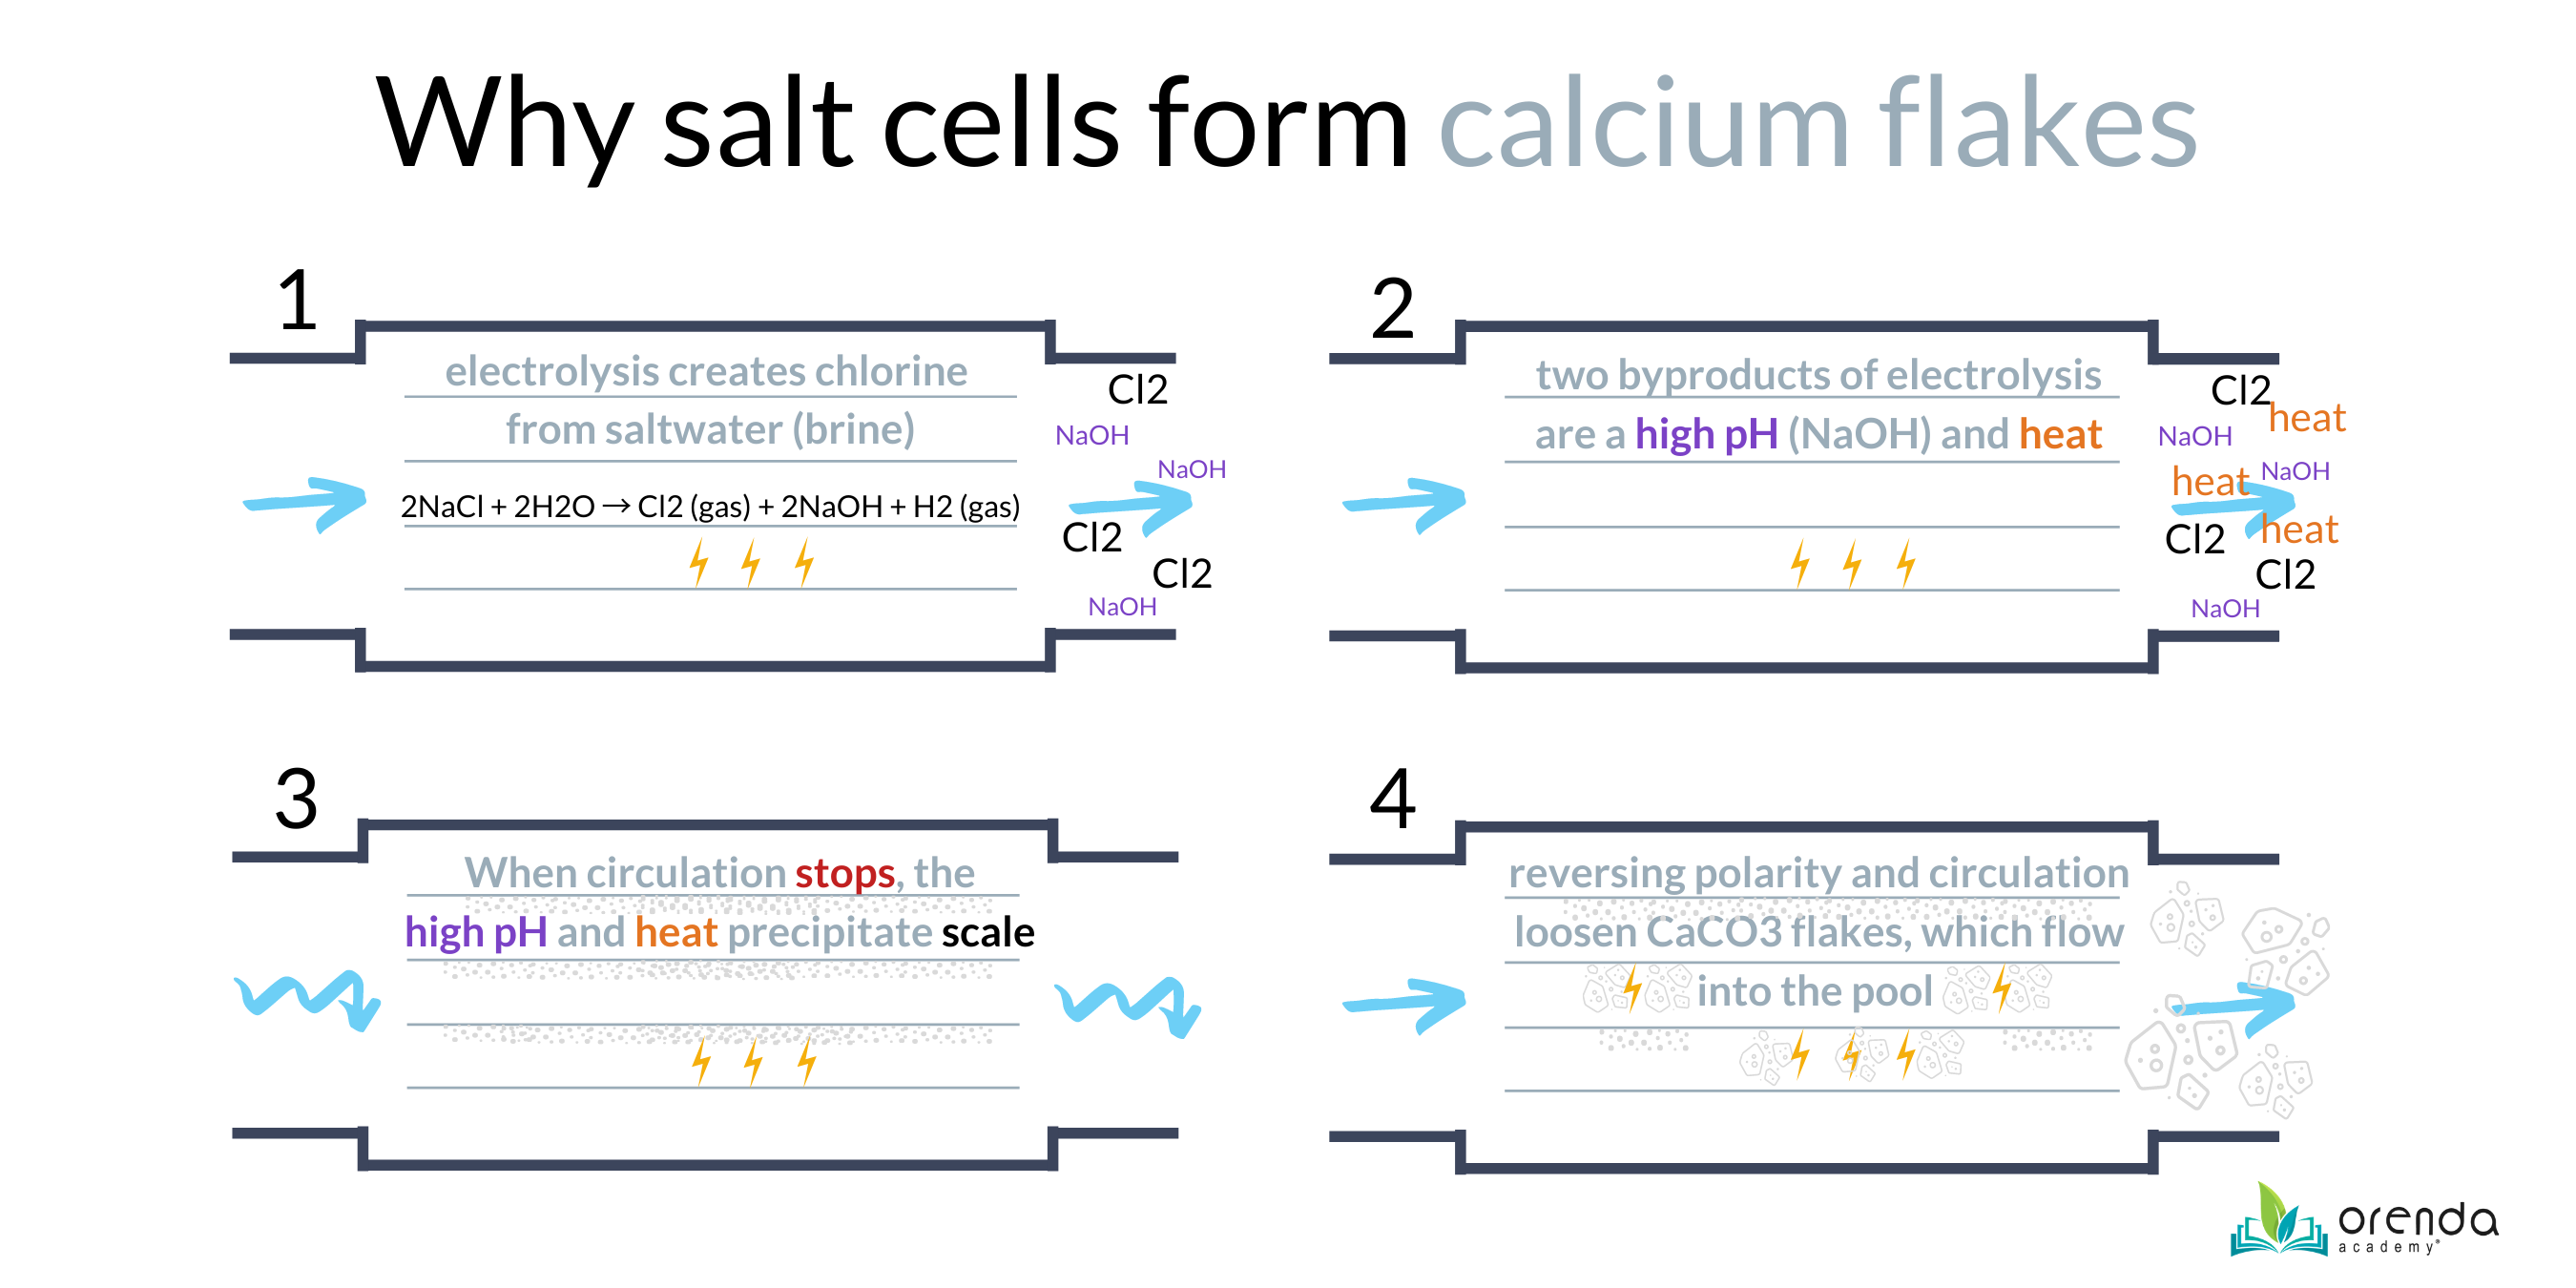 why salt cells form calcium flakes